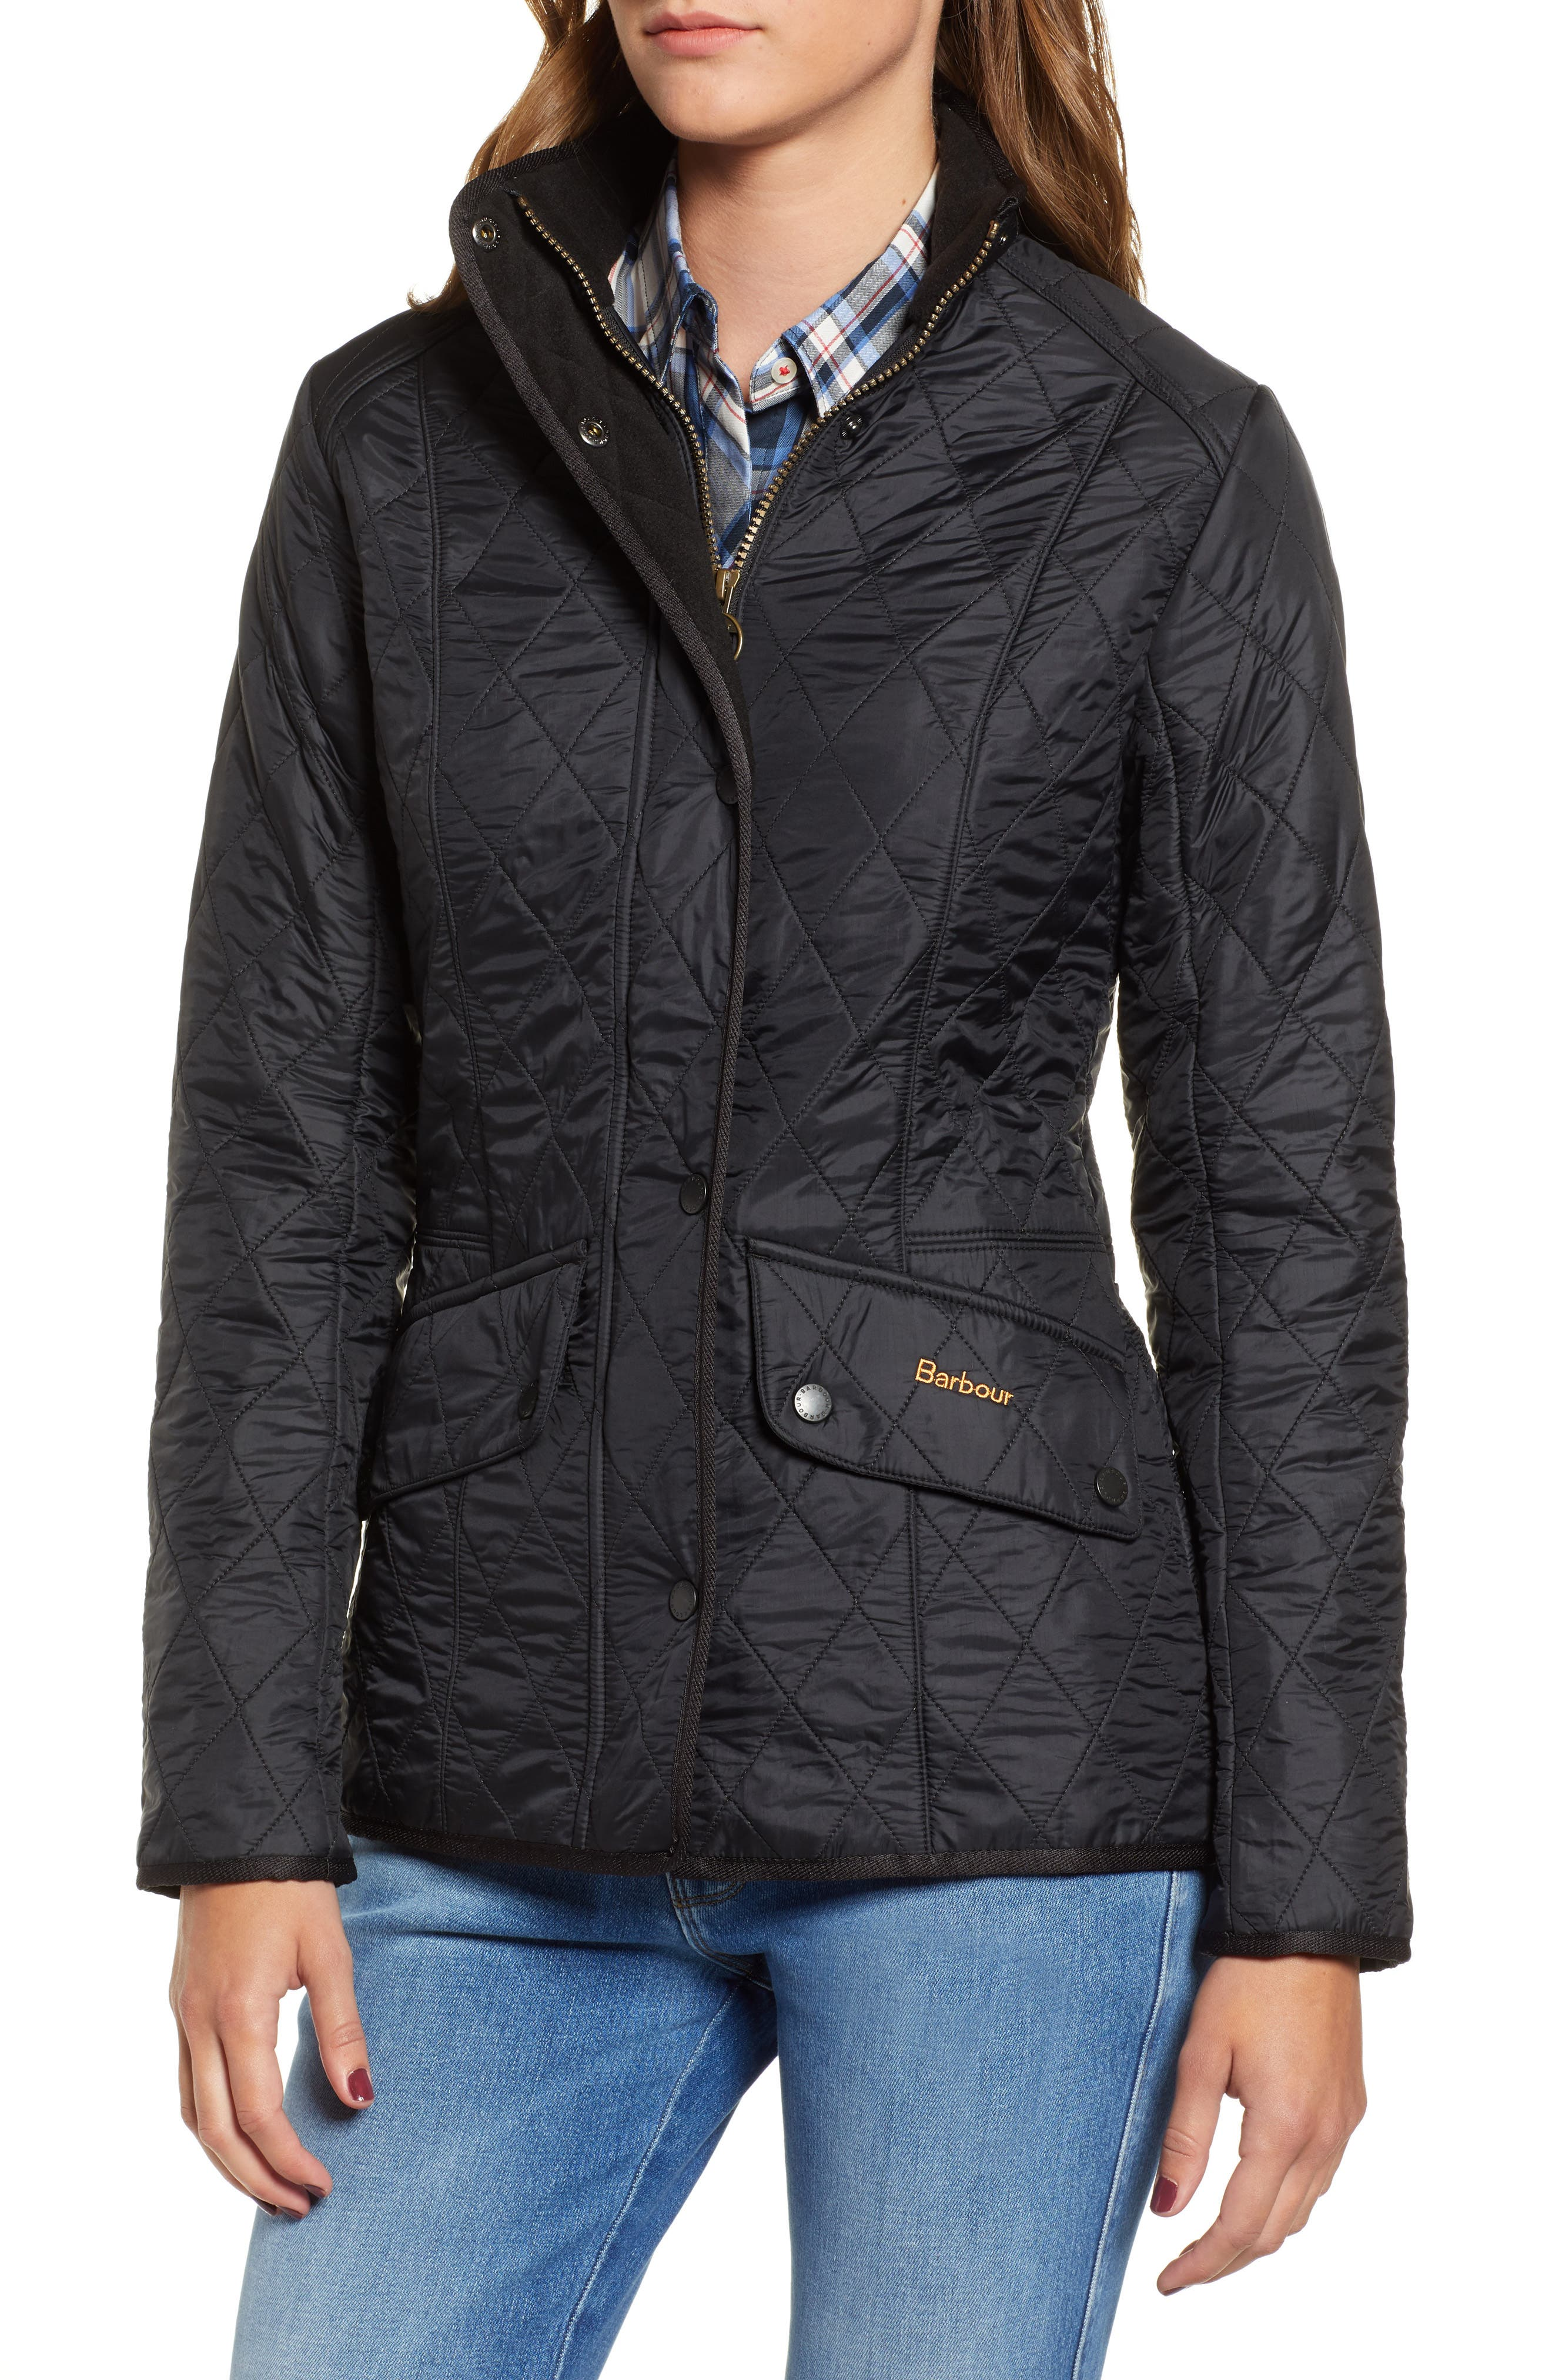 BARBOUR, 'Cavalry' Quilted Jacket, Alternate thumbnail 4, color, 001